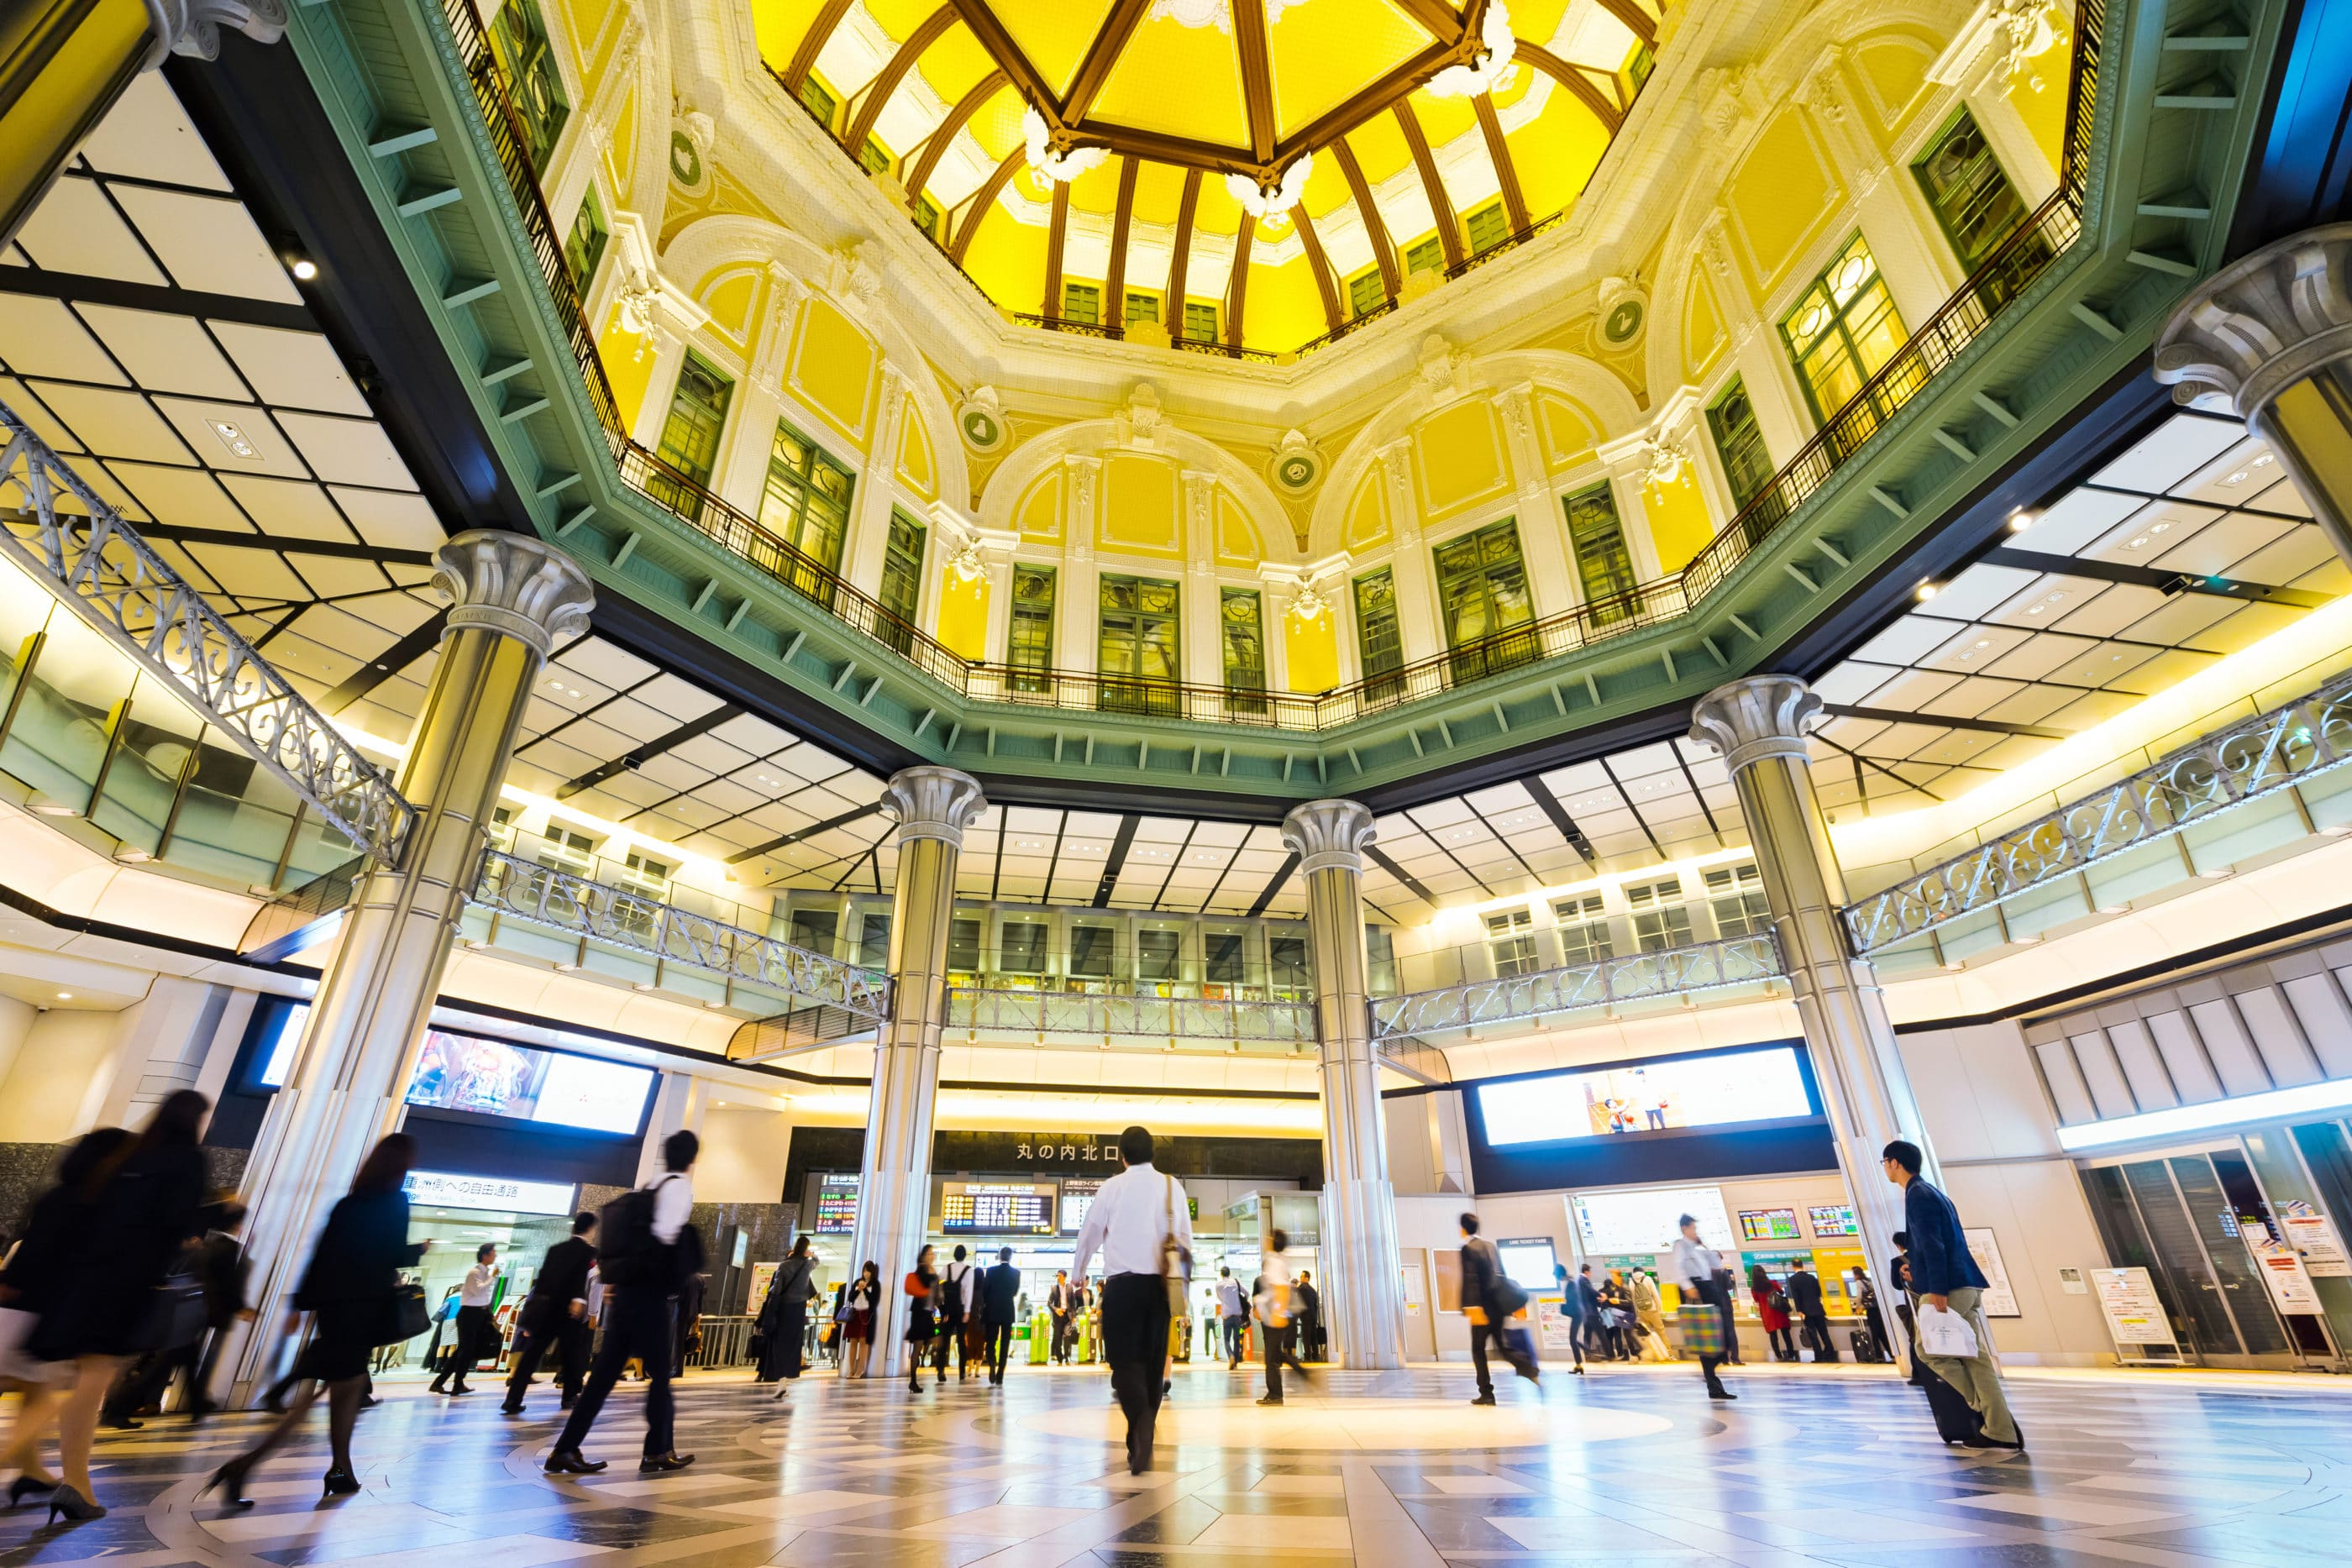 Looking up at the Tokyo Station green and yellow atrium